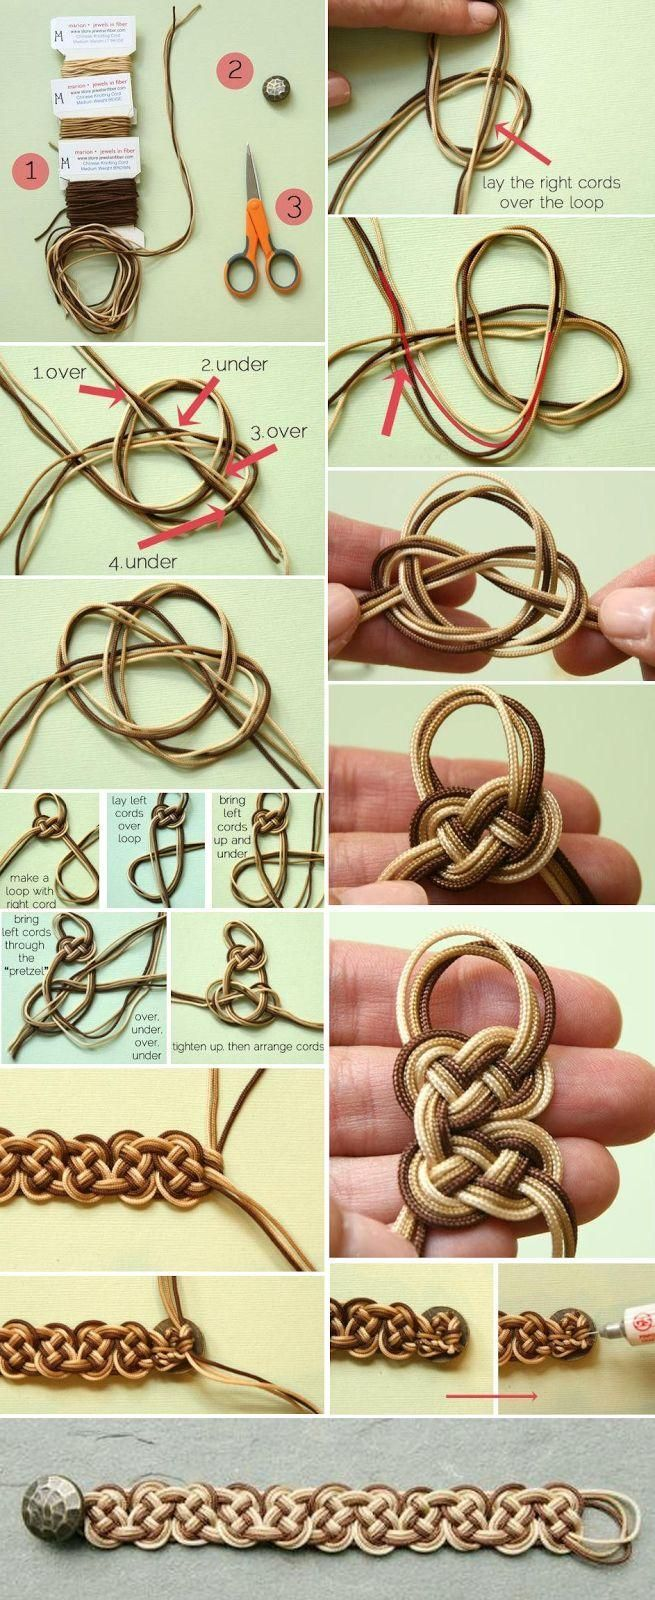 I just light the design for rope or strings